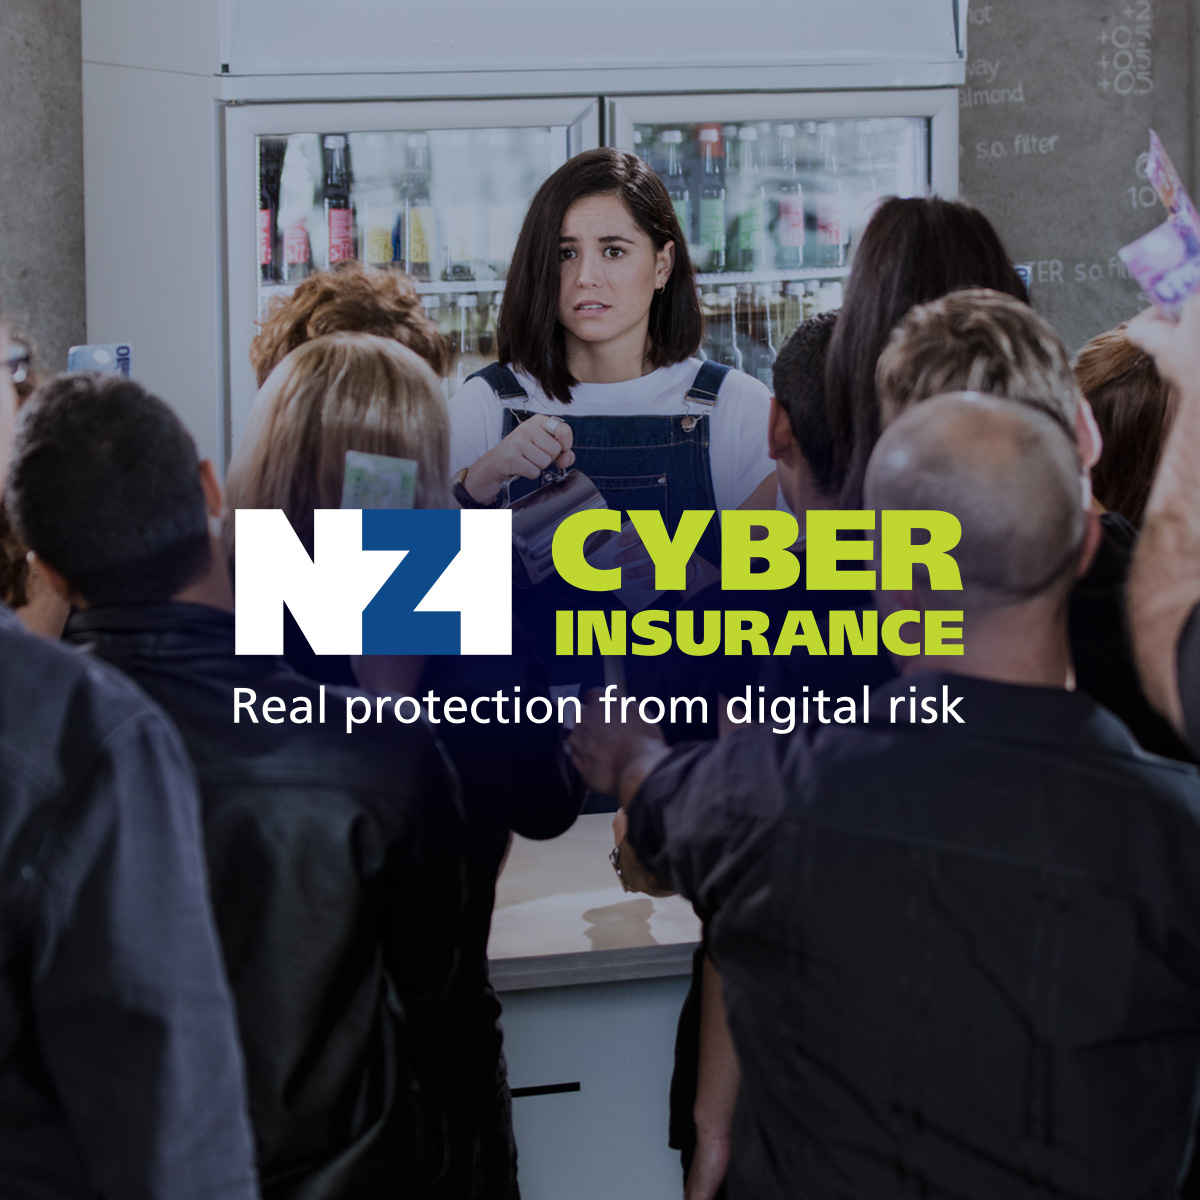 NZI Cyber Insurance   To launch their new range of cyber insurance products, NZI needed to show Kiwi business owners that cyber threats could cause just as much damage as the real world threats.